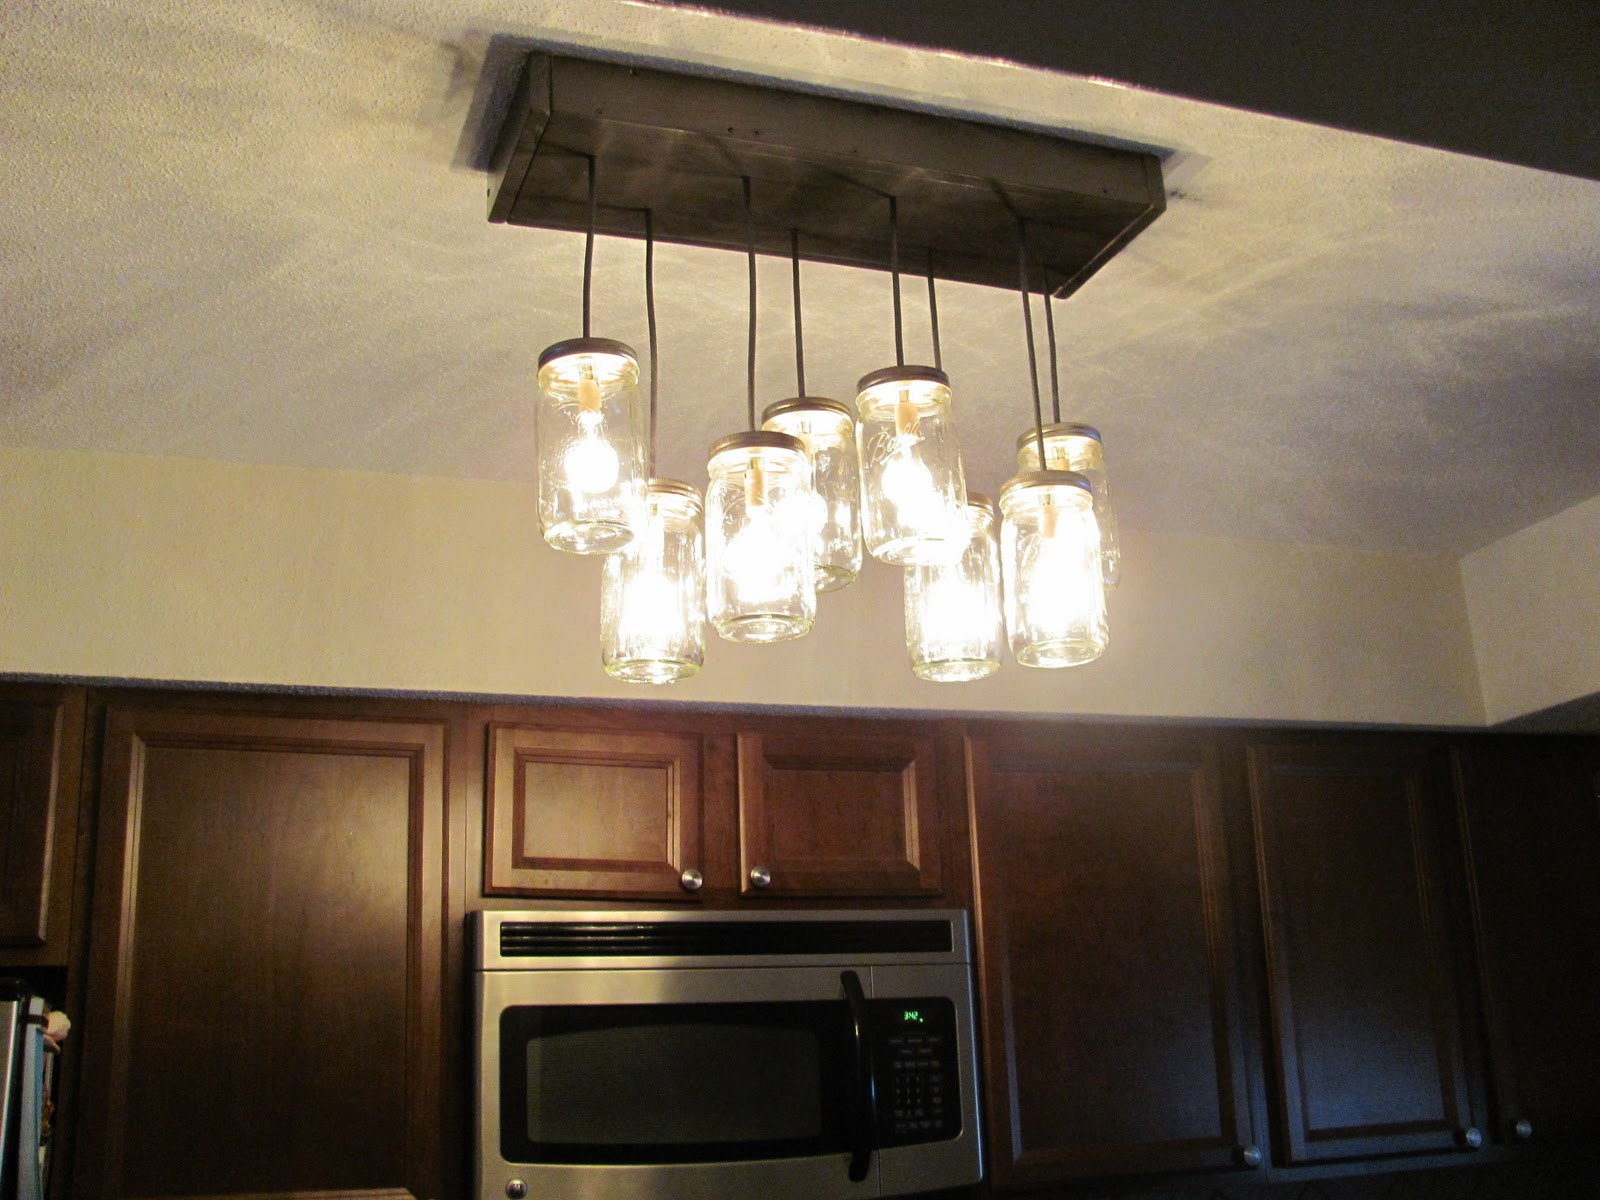 Pottery Barn Kitchen Lighting Similiar Pottery Barn Mason Jar Chandelier Keywords